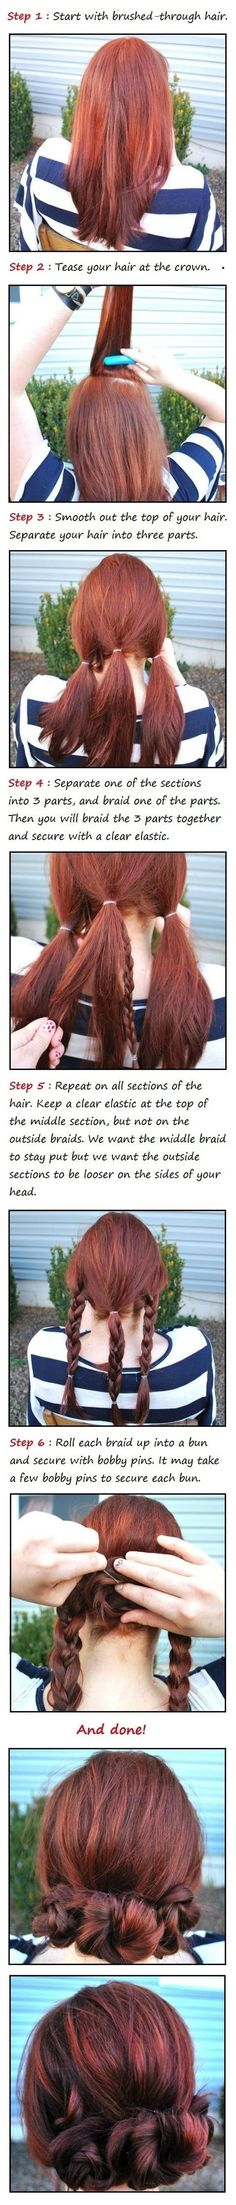 Simple braid buns make second-day hair even better than it was the day before. | 17 Ways To Never Have A Bad Hair Day Again